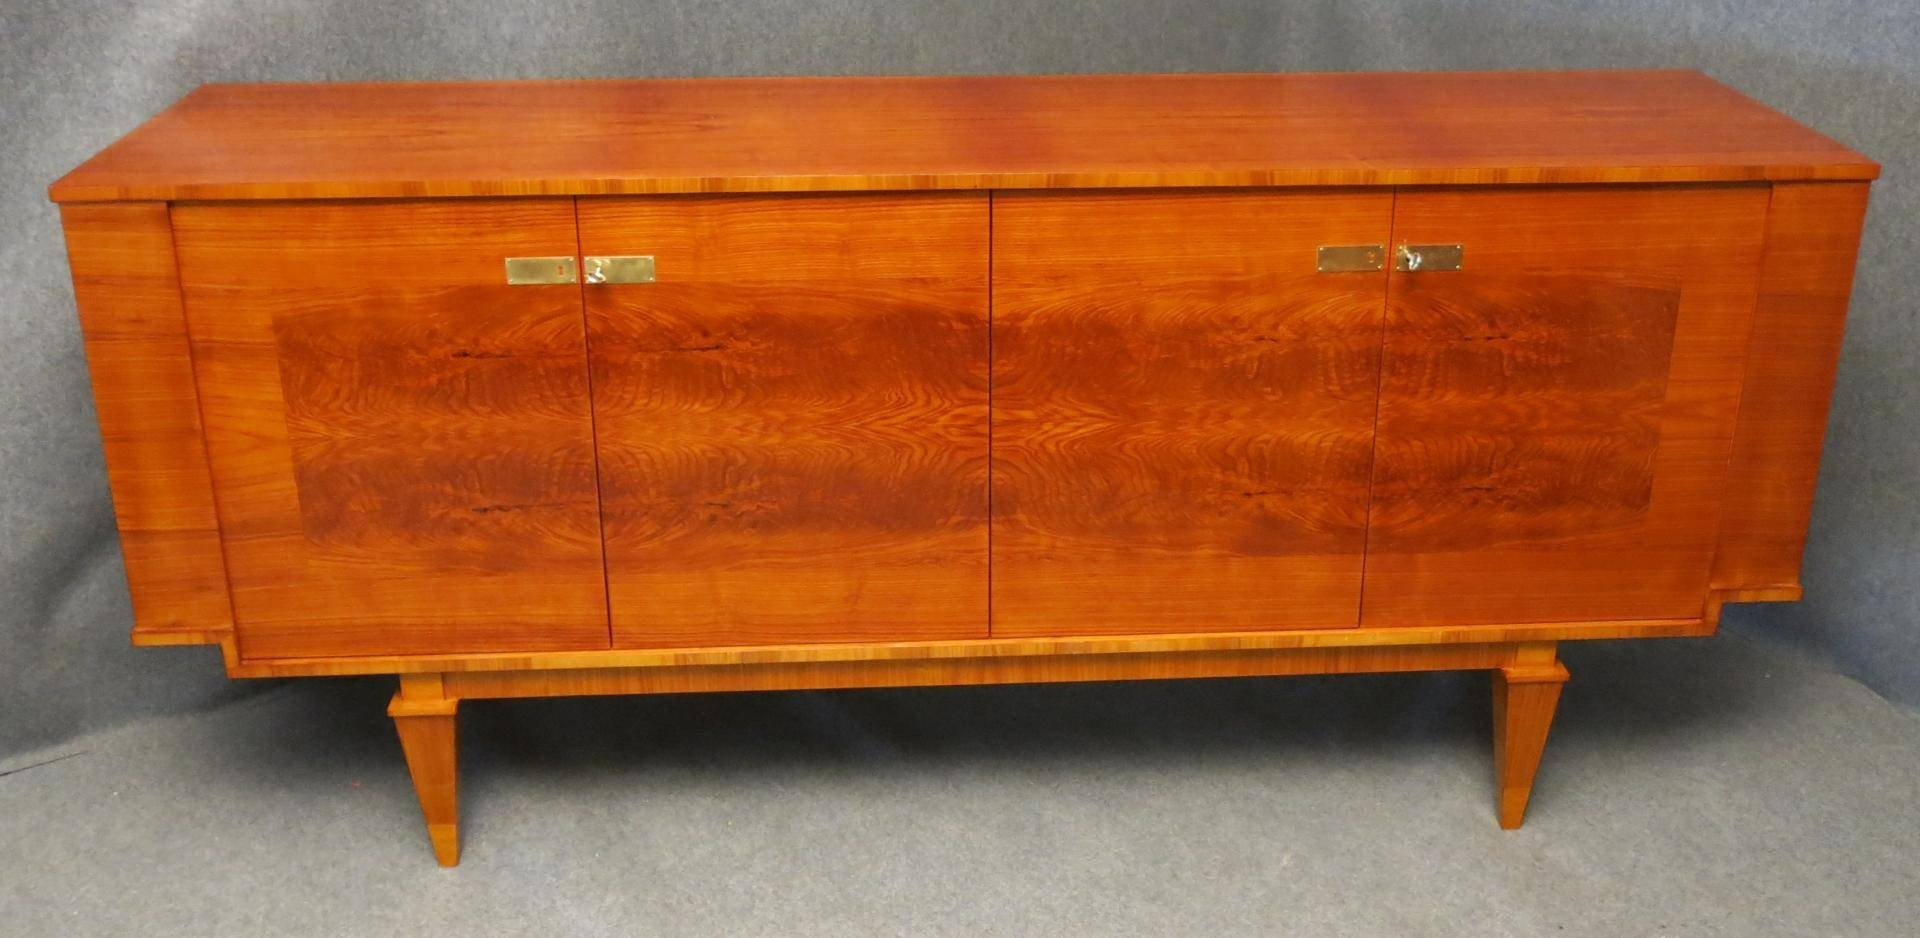 French Art Deco Sideboard, 1920S For Sale At Pamono inside Art Deco Sideboards (Image 8 of 15)